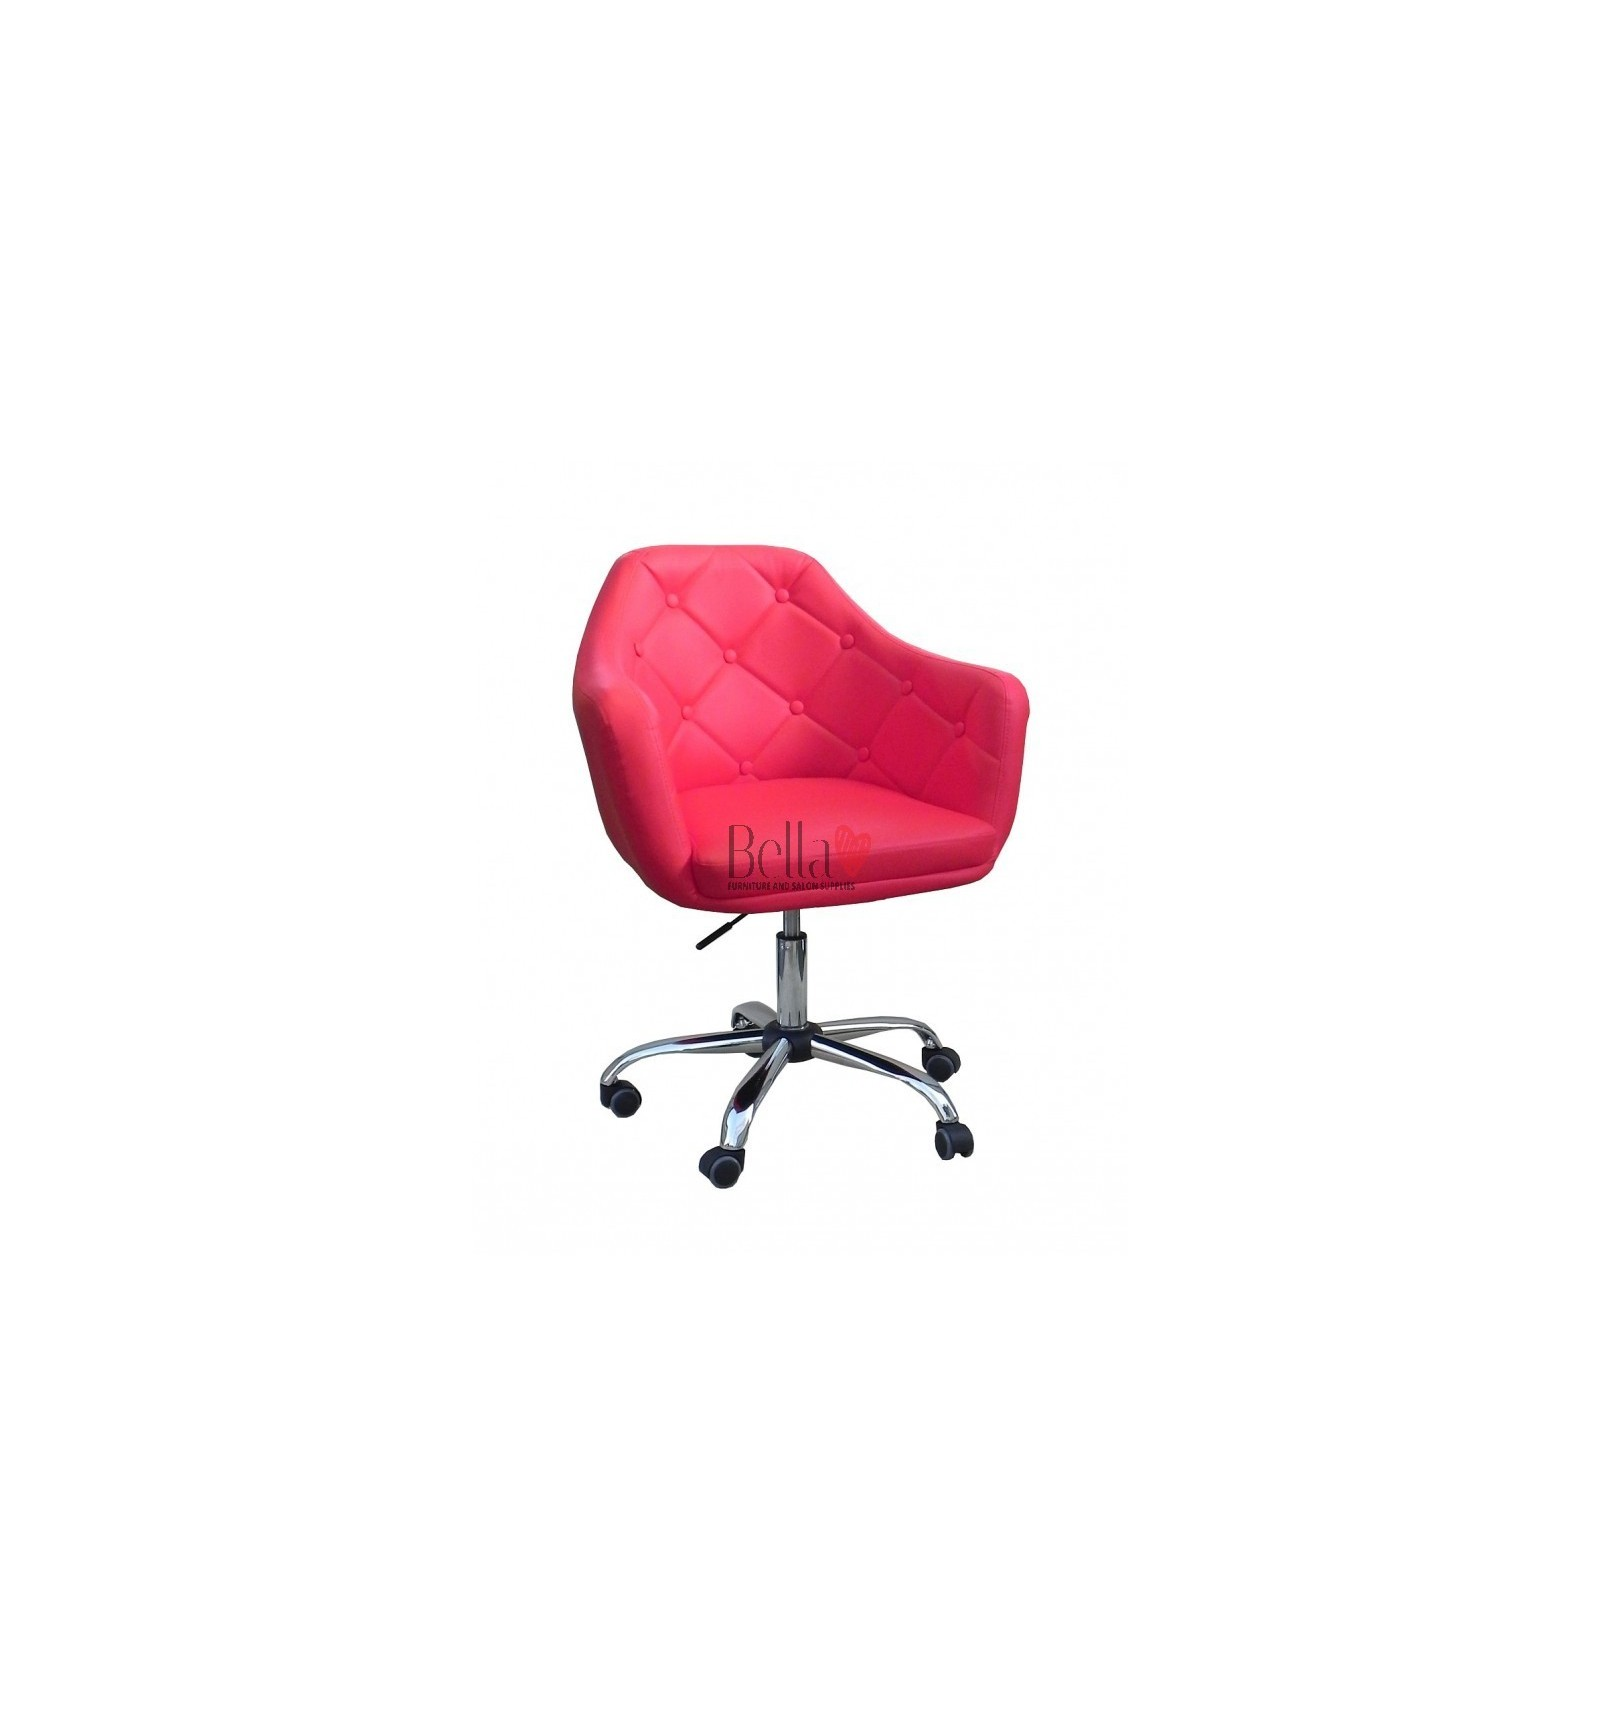 red chairs for sale high back wing chair recliner salon dublin ireland beauty salons stylish on wheels